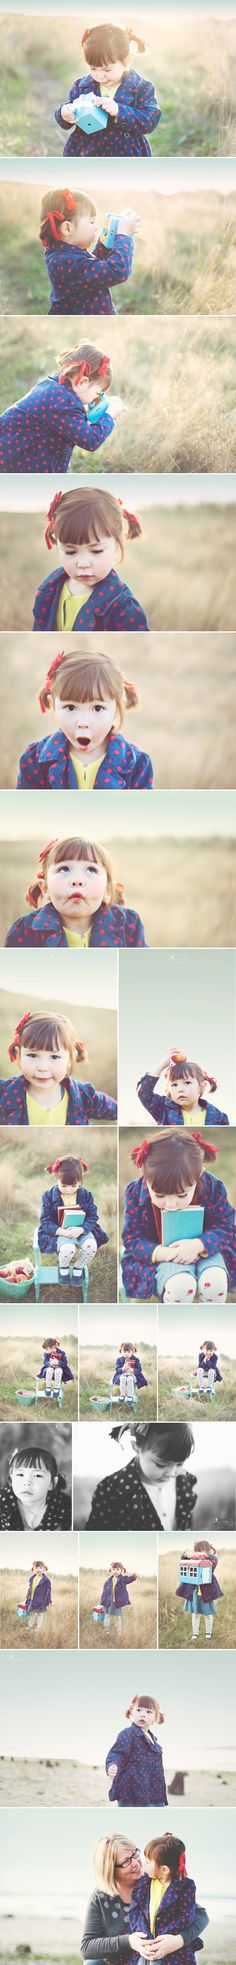 children photography - little girl - expressions